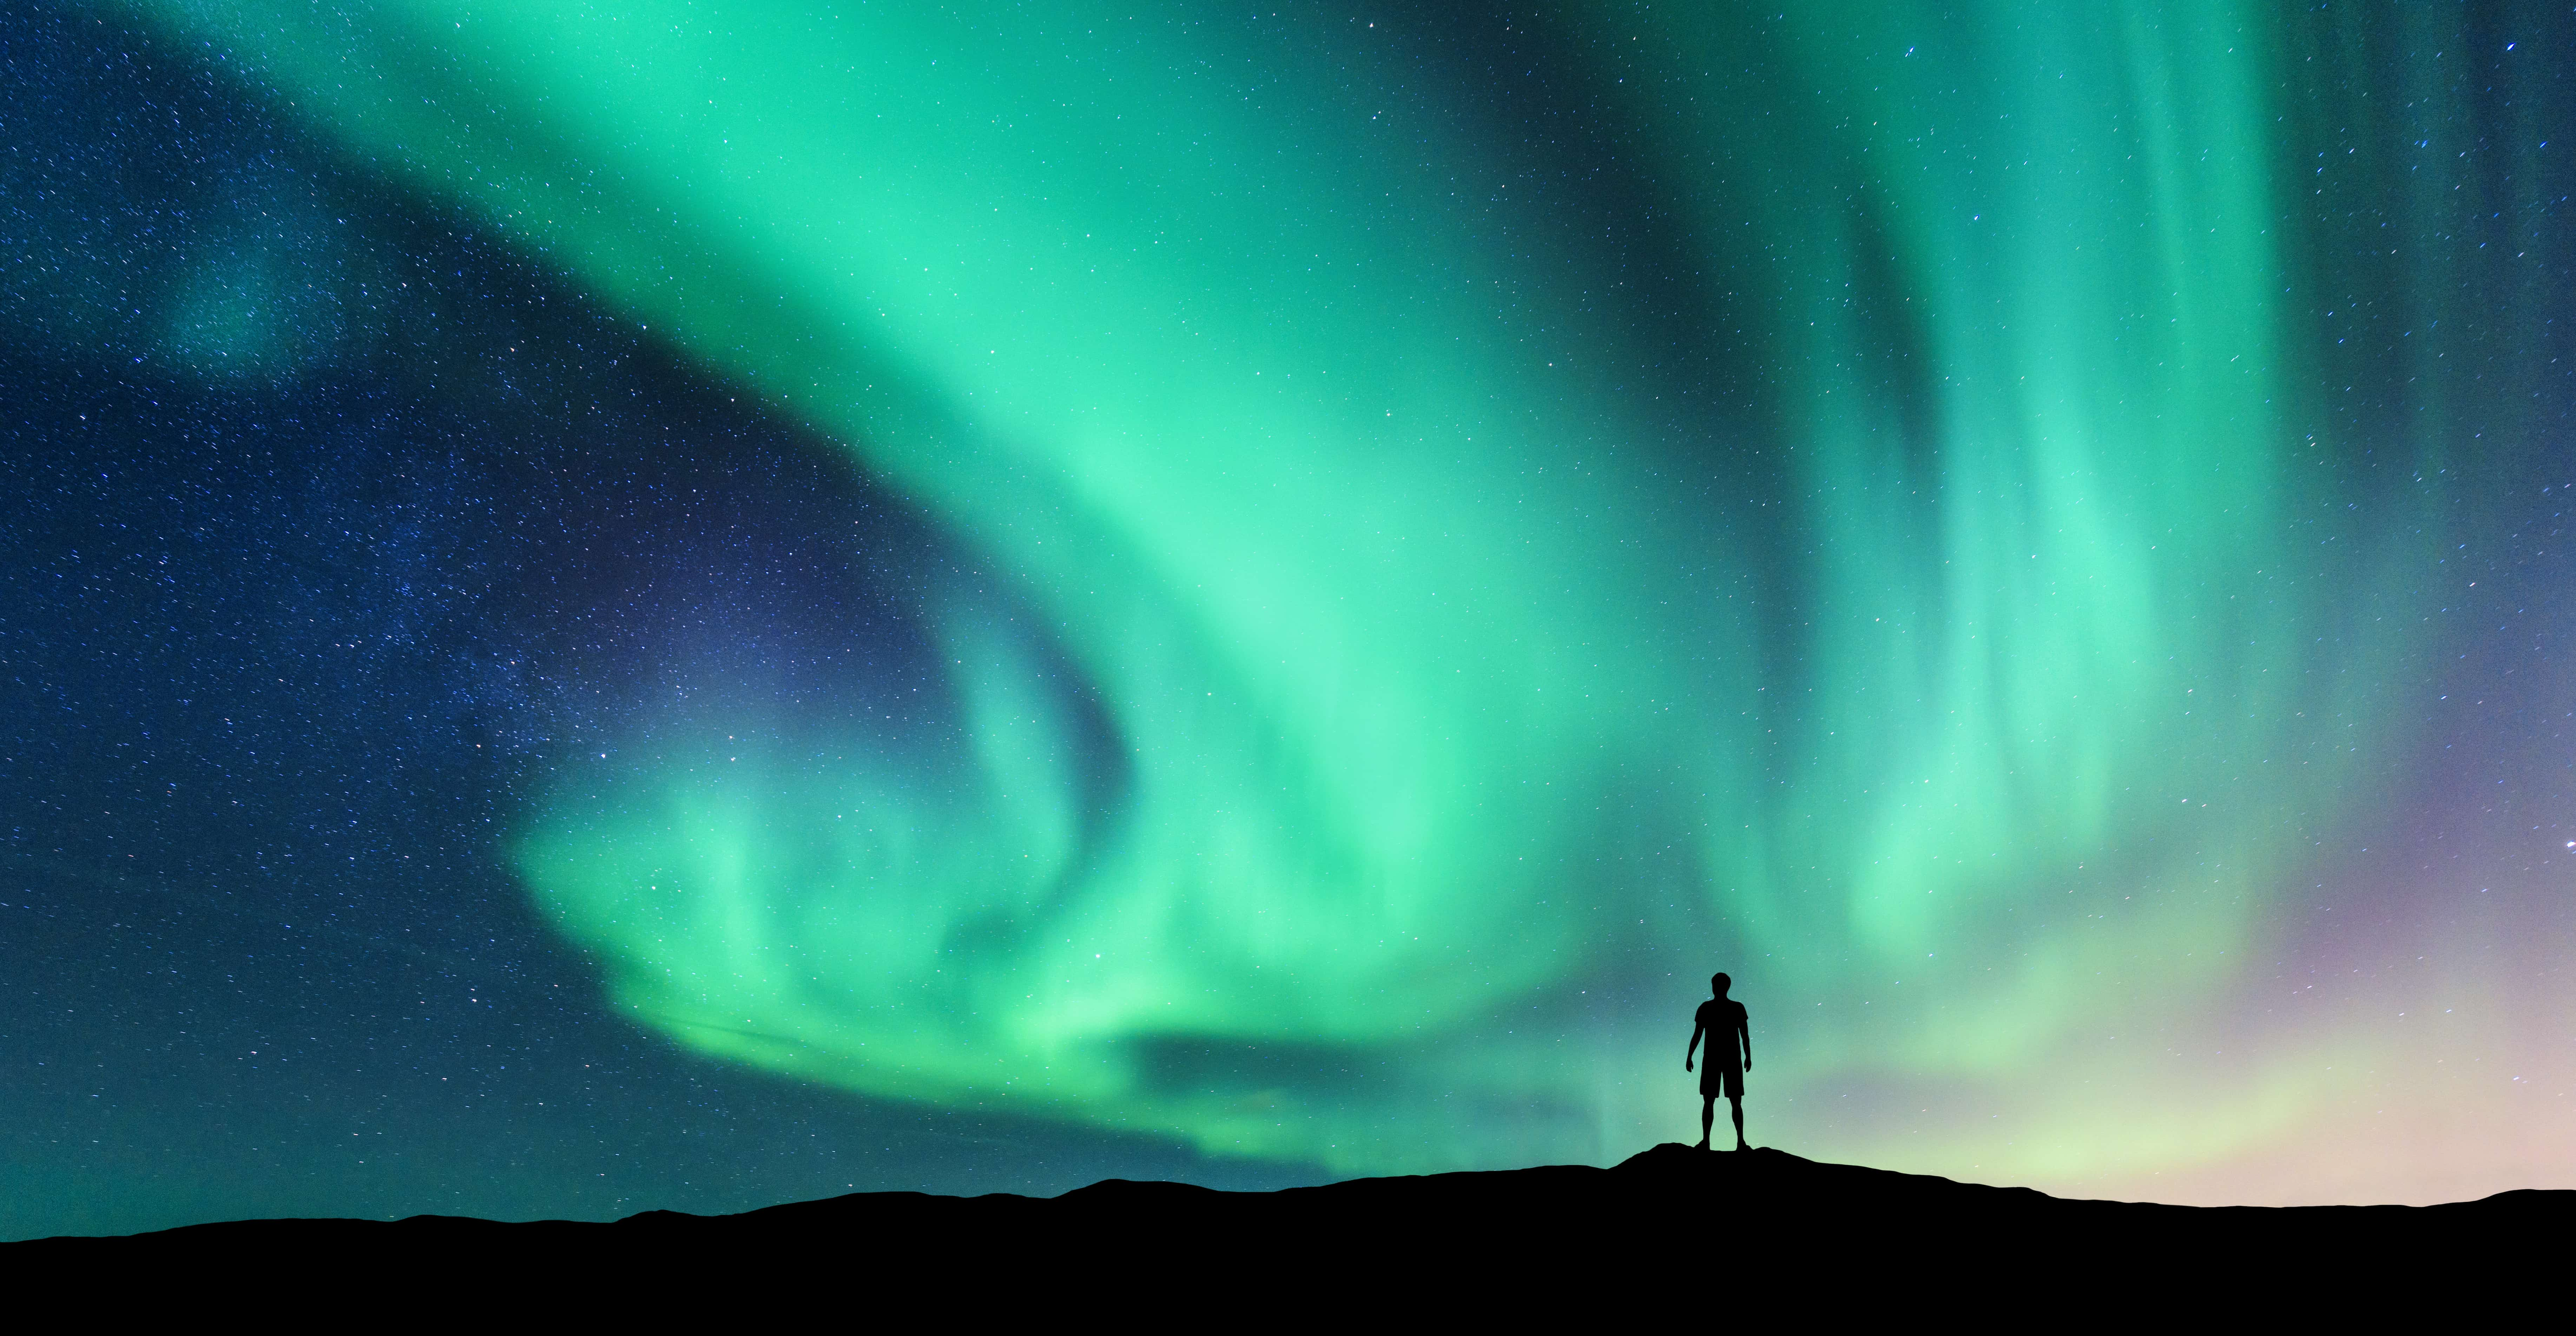 Silhouette of a Man Staring at Dancing Northern Lights